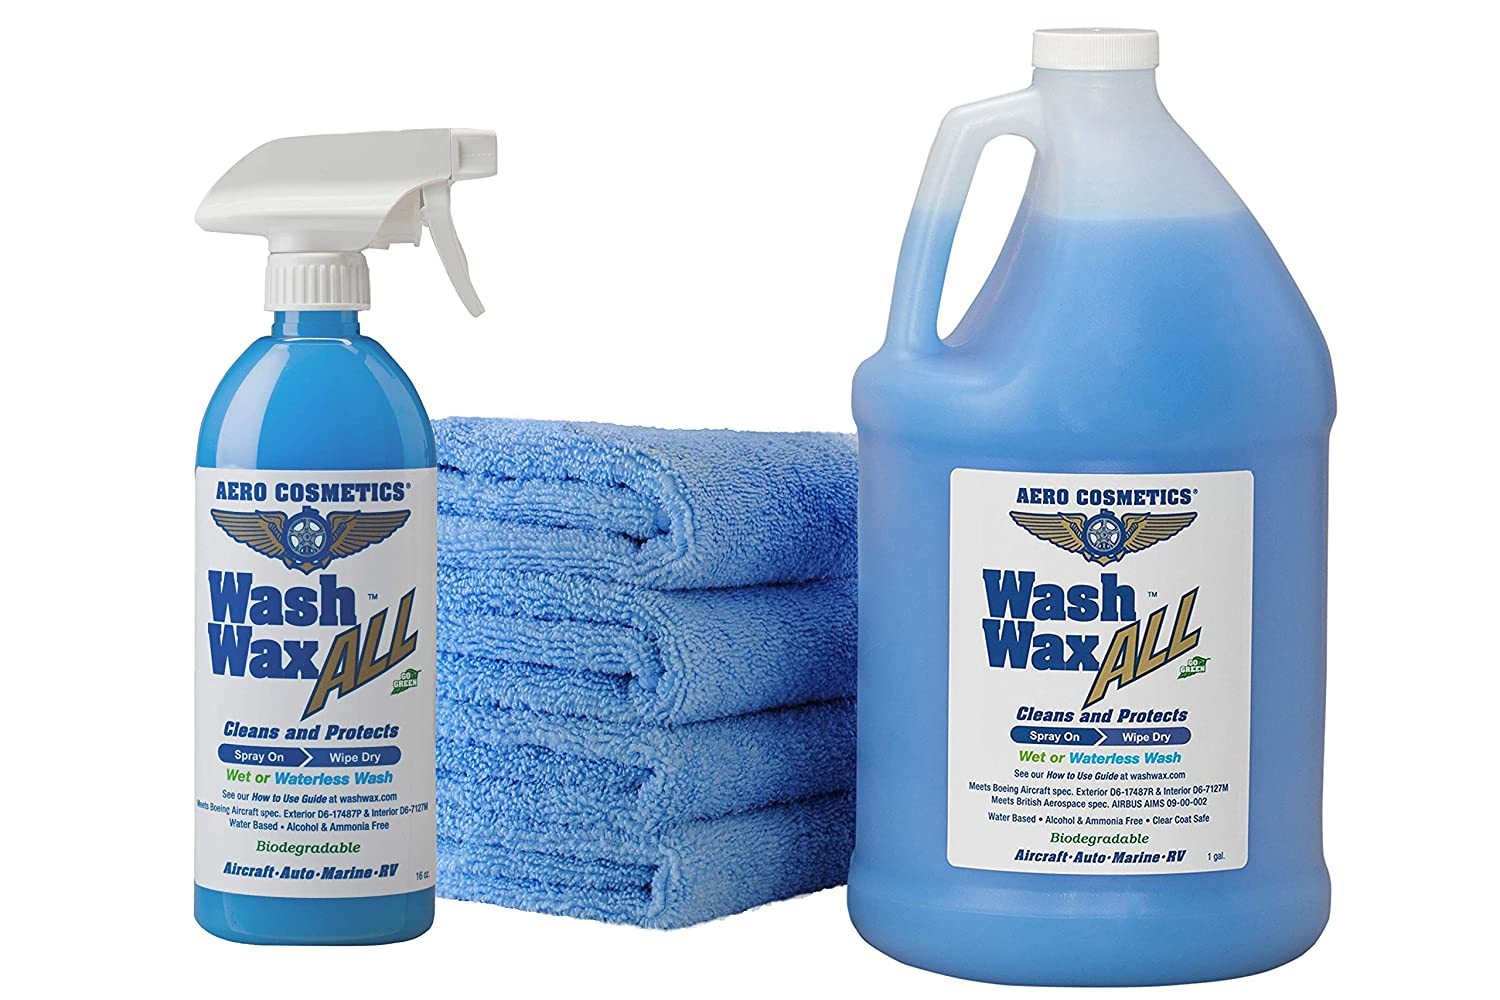 Wet or Waterless Car Wash Wax Kit 144 oz. Aircraft Quality for your Car RV Boat & Motorcycle. Guaranteed the Best Wash Wax Anywhere, Anytime Home Office School Garage Parking Lots Parks Aero Cosmetics FBA_wcwk